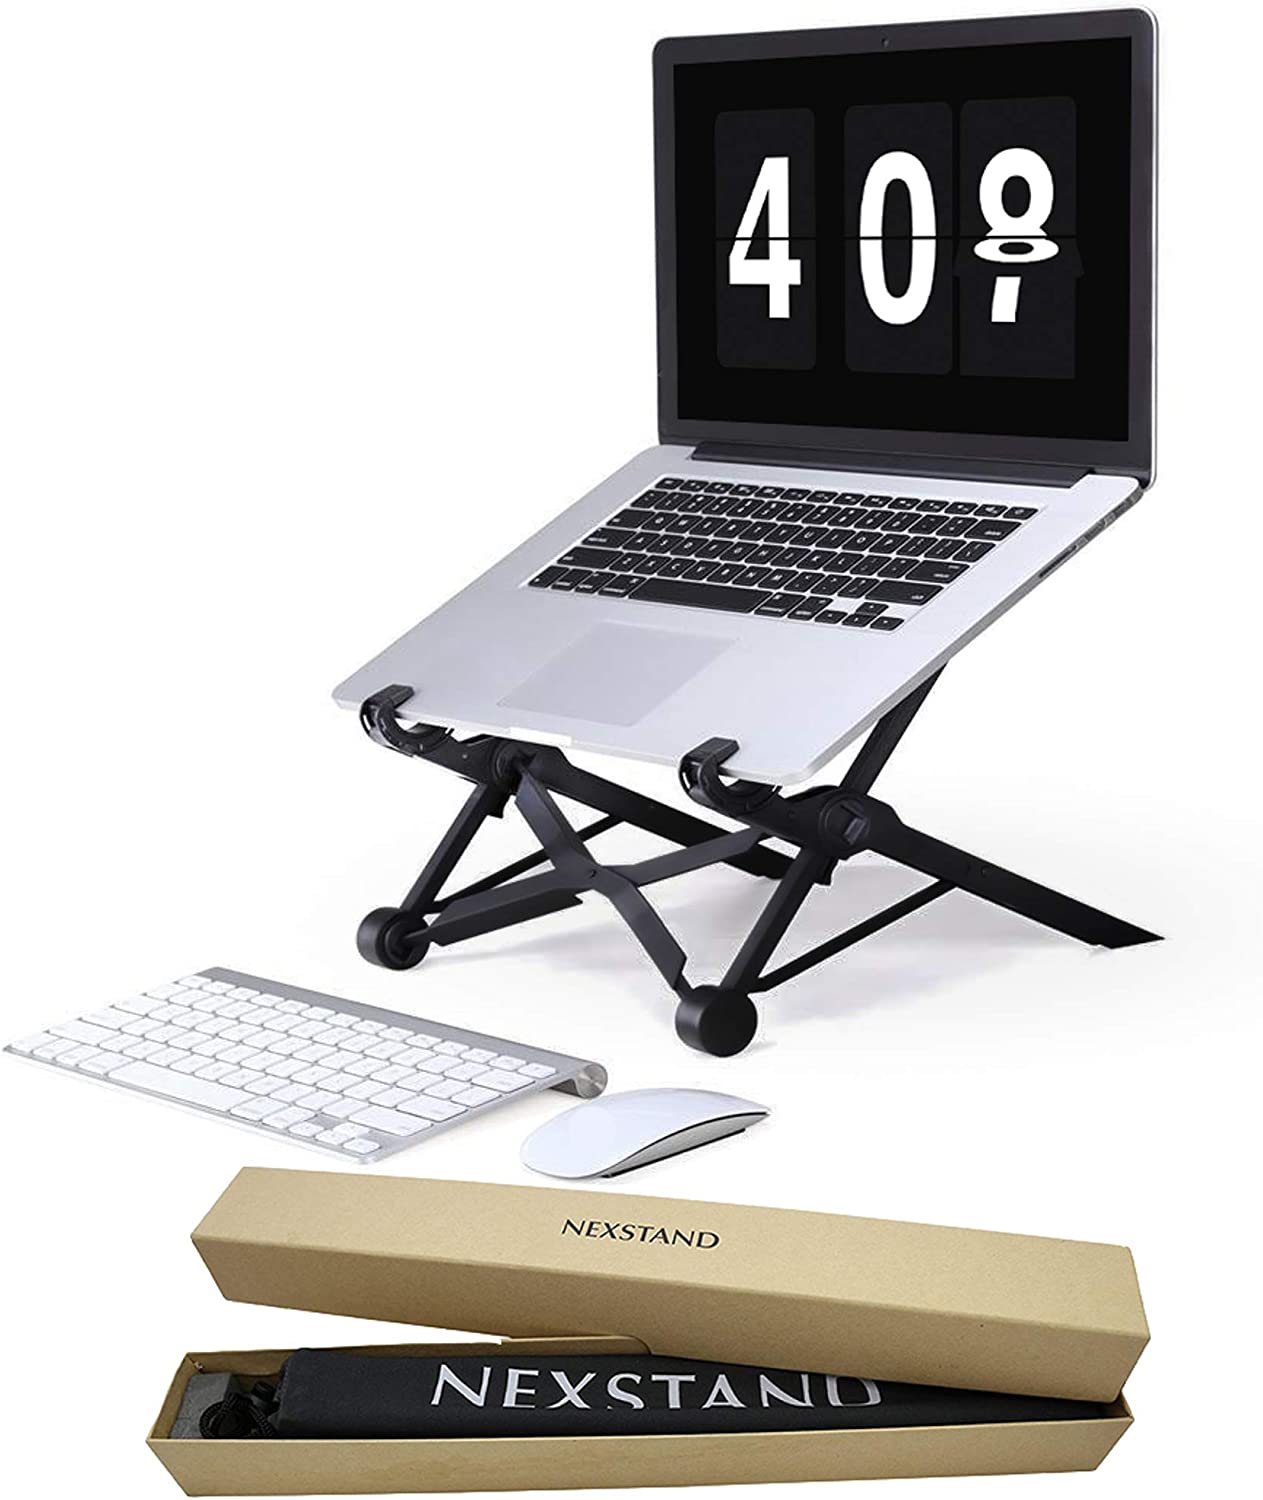 Nexstand Laptop Stand – Portable Laptop Stand – PC and MacBook Laptop Stand